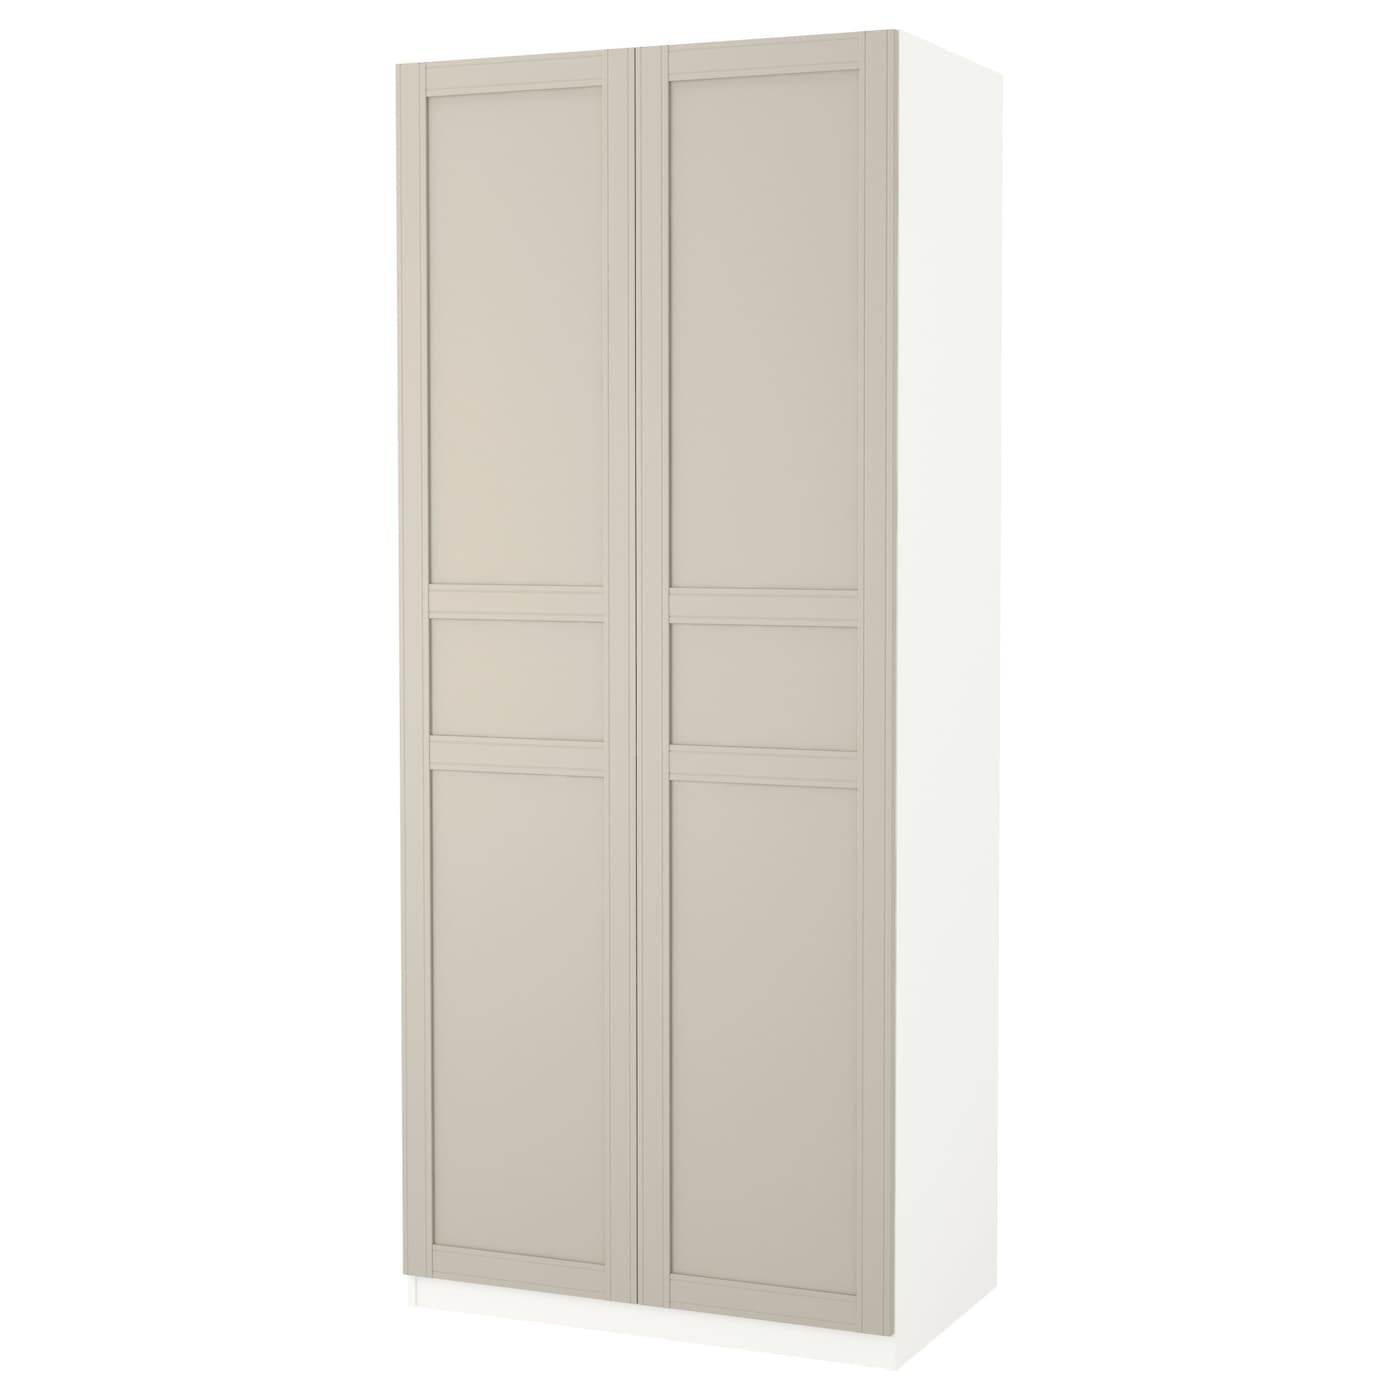 pax wardrobe white flisberget light beige 100 x 60 x 236 cm ikea. Black Bedroom Furniture Sets. Home Design Ideas